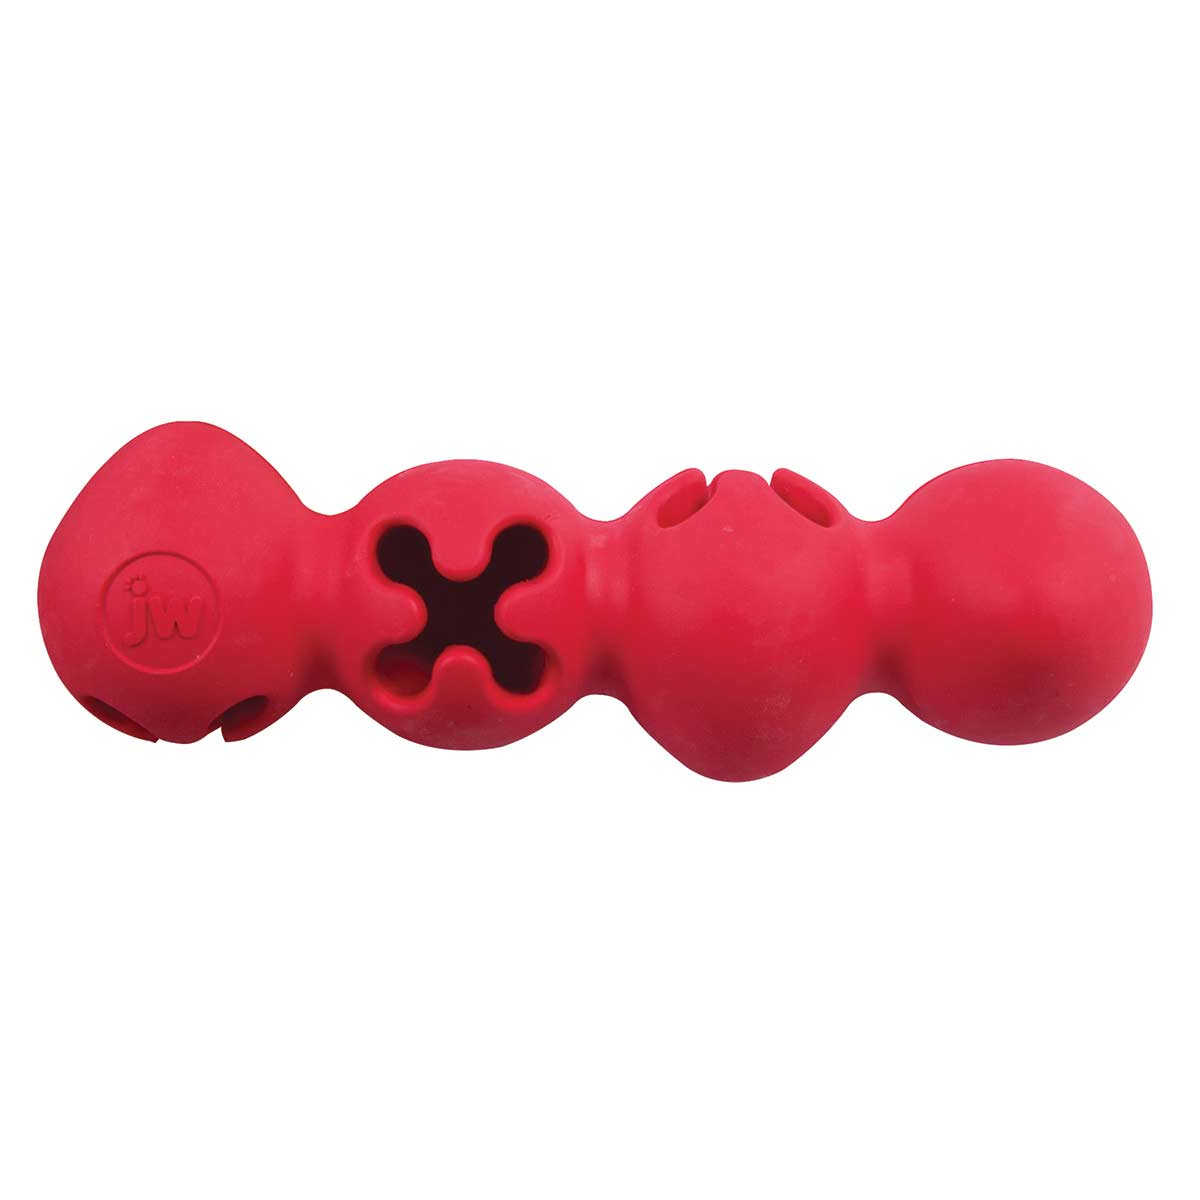 JW Playbites Caterpillar Large - Treat Dispensing Toy for Dogs